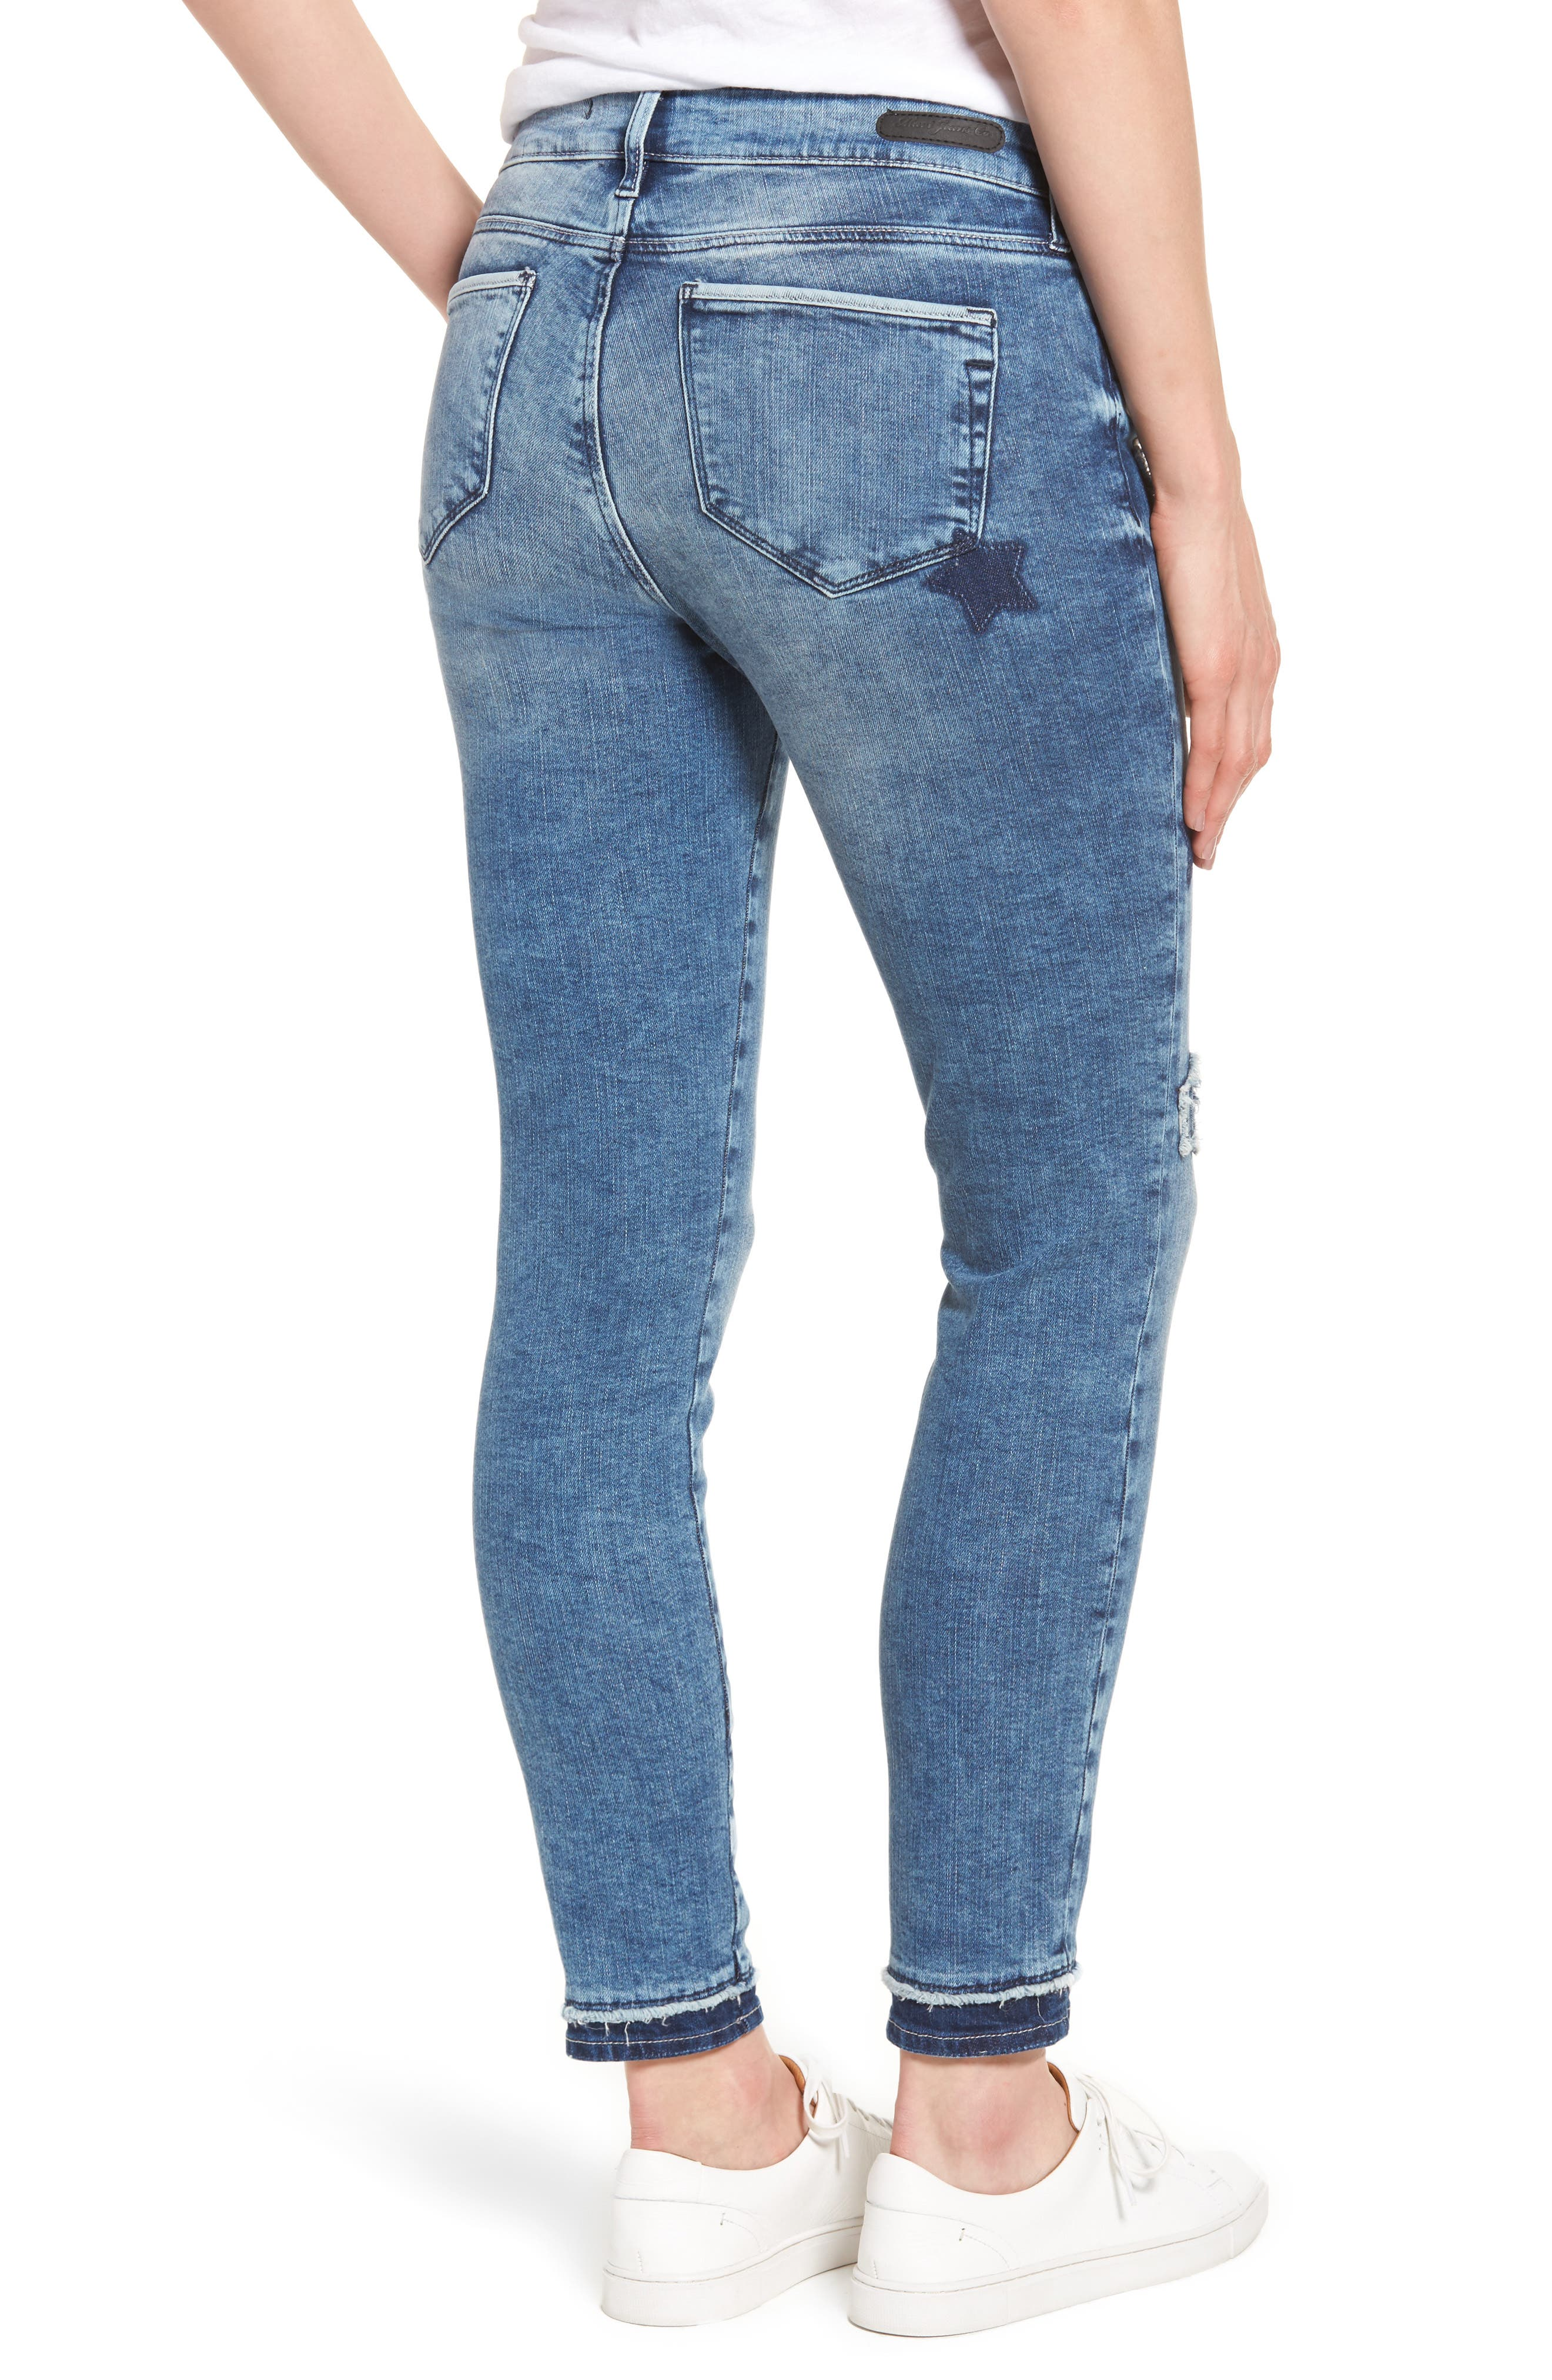 Adriana Super Skinny Ankle Jeans,                             Alternate thumbnail 2, color,                             420